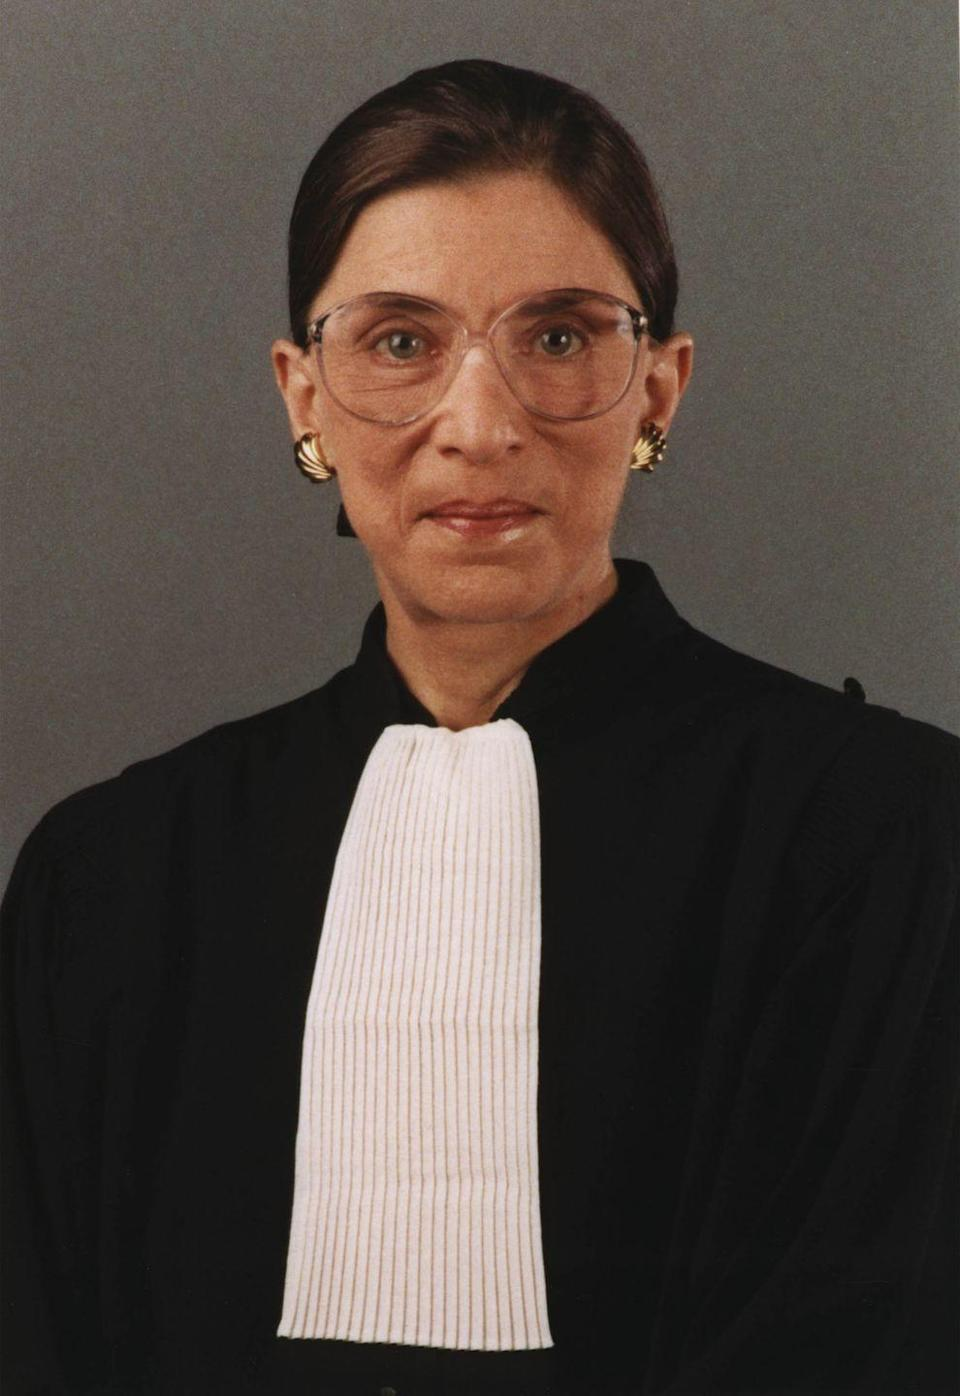 """<p>When she first took her seat on the bench in 1993, Ginsburg stuck to styles that were devoid of embellishment and frills. Back then, she <a href=""""https://www.latimes.com/archives/la-xpm-1993-06-15-mn-3237-story.html"""" rel=""""nofollow noopener"""" target=""""_blank"""" data-ylk=""""slk:followed moderate views"""" class=""""link rapid-noclick-resp"""">followed moderate views</a>. Over the years, her stance on issues became more progressive, and so did her choice in collars. </p>"""